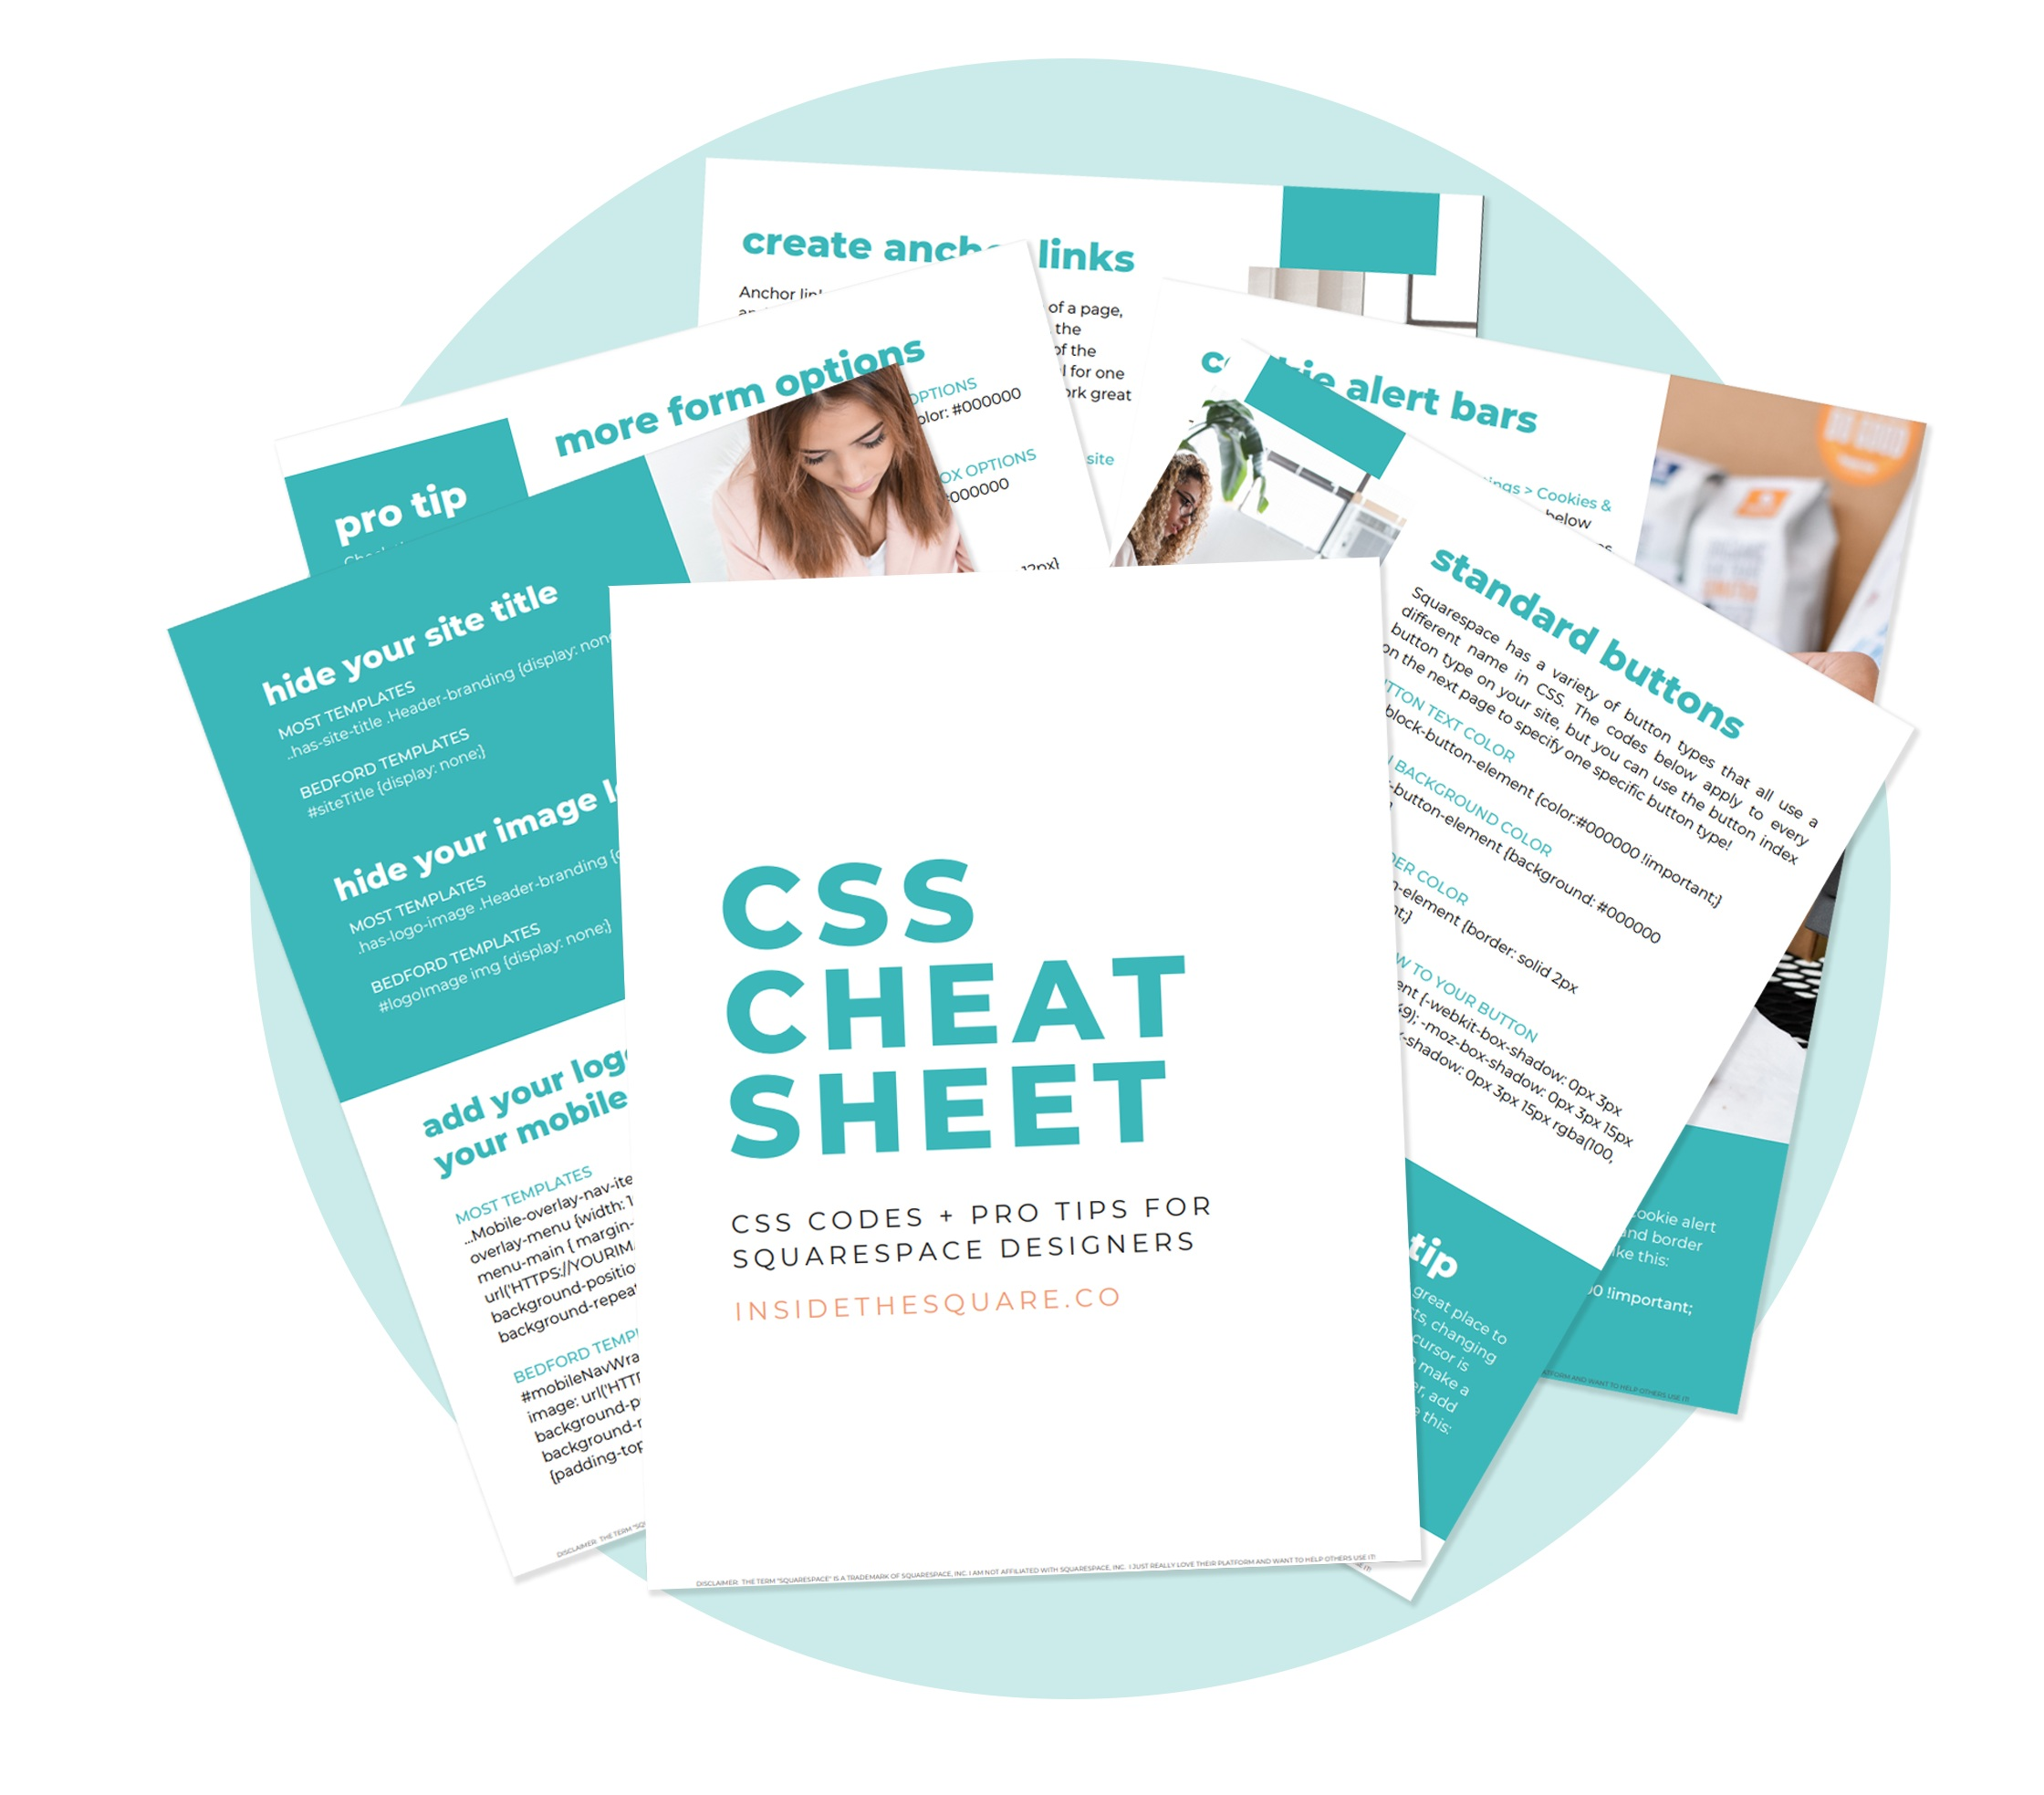 The codes you need to build a better website. - Get the CSS Cheat Sheet, used by Squarespace designers around the world to make stunning websites.